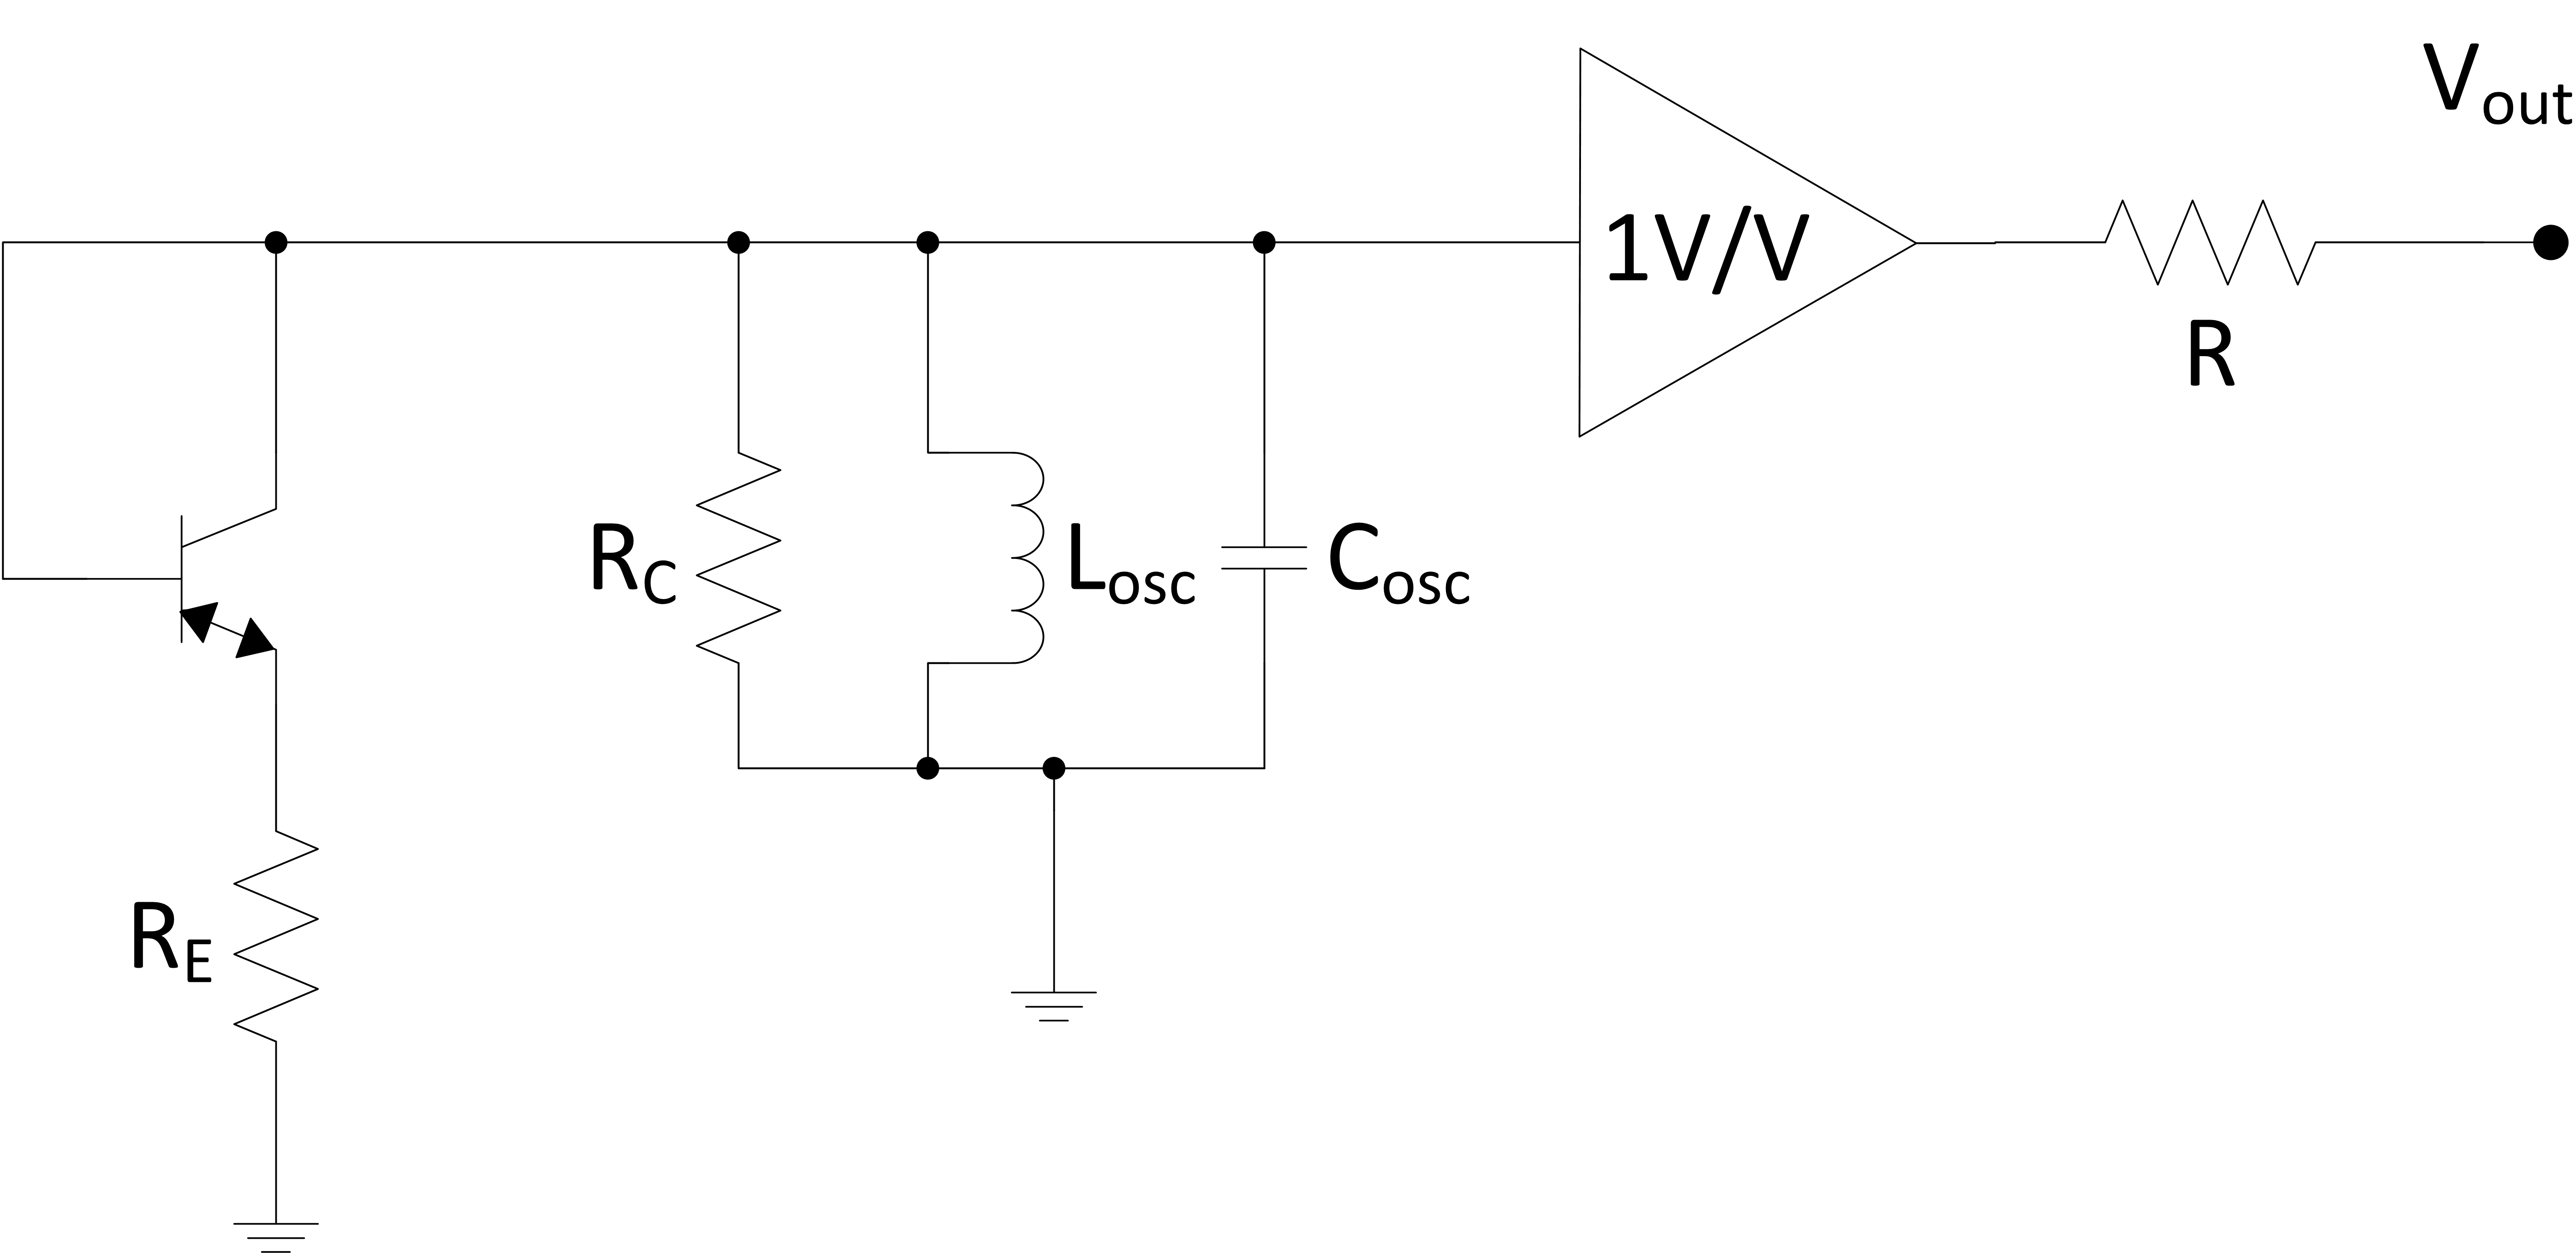 Transistor Oscillator Circuit Crystal Signalprocessing Diagram Seekiccom Wanted Stable Analog Wire Blogs Ti E Community 5781x2811